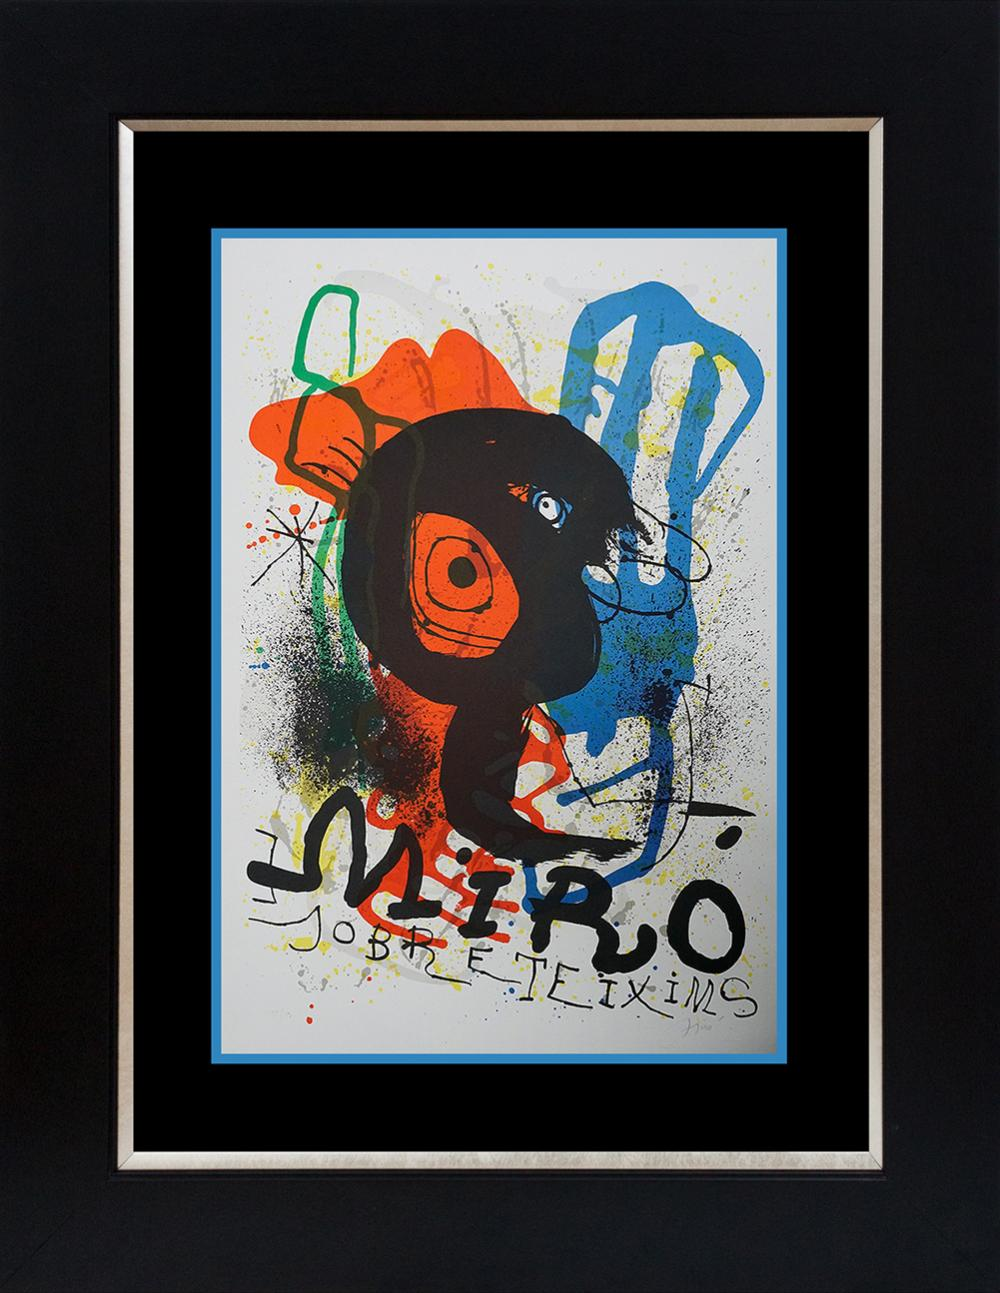 Joan Miro Original Lithograph Limited Edition Sobreteixims Exhibition from 1973 Reference Cramer 919.  This original lithograph is number 95 of 150 Hand signed and numbered by the artist. Custom framed and includes certificate  Approx  34x28 inches